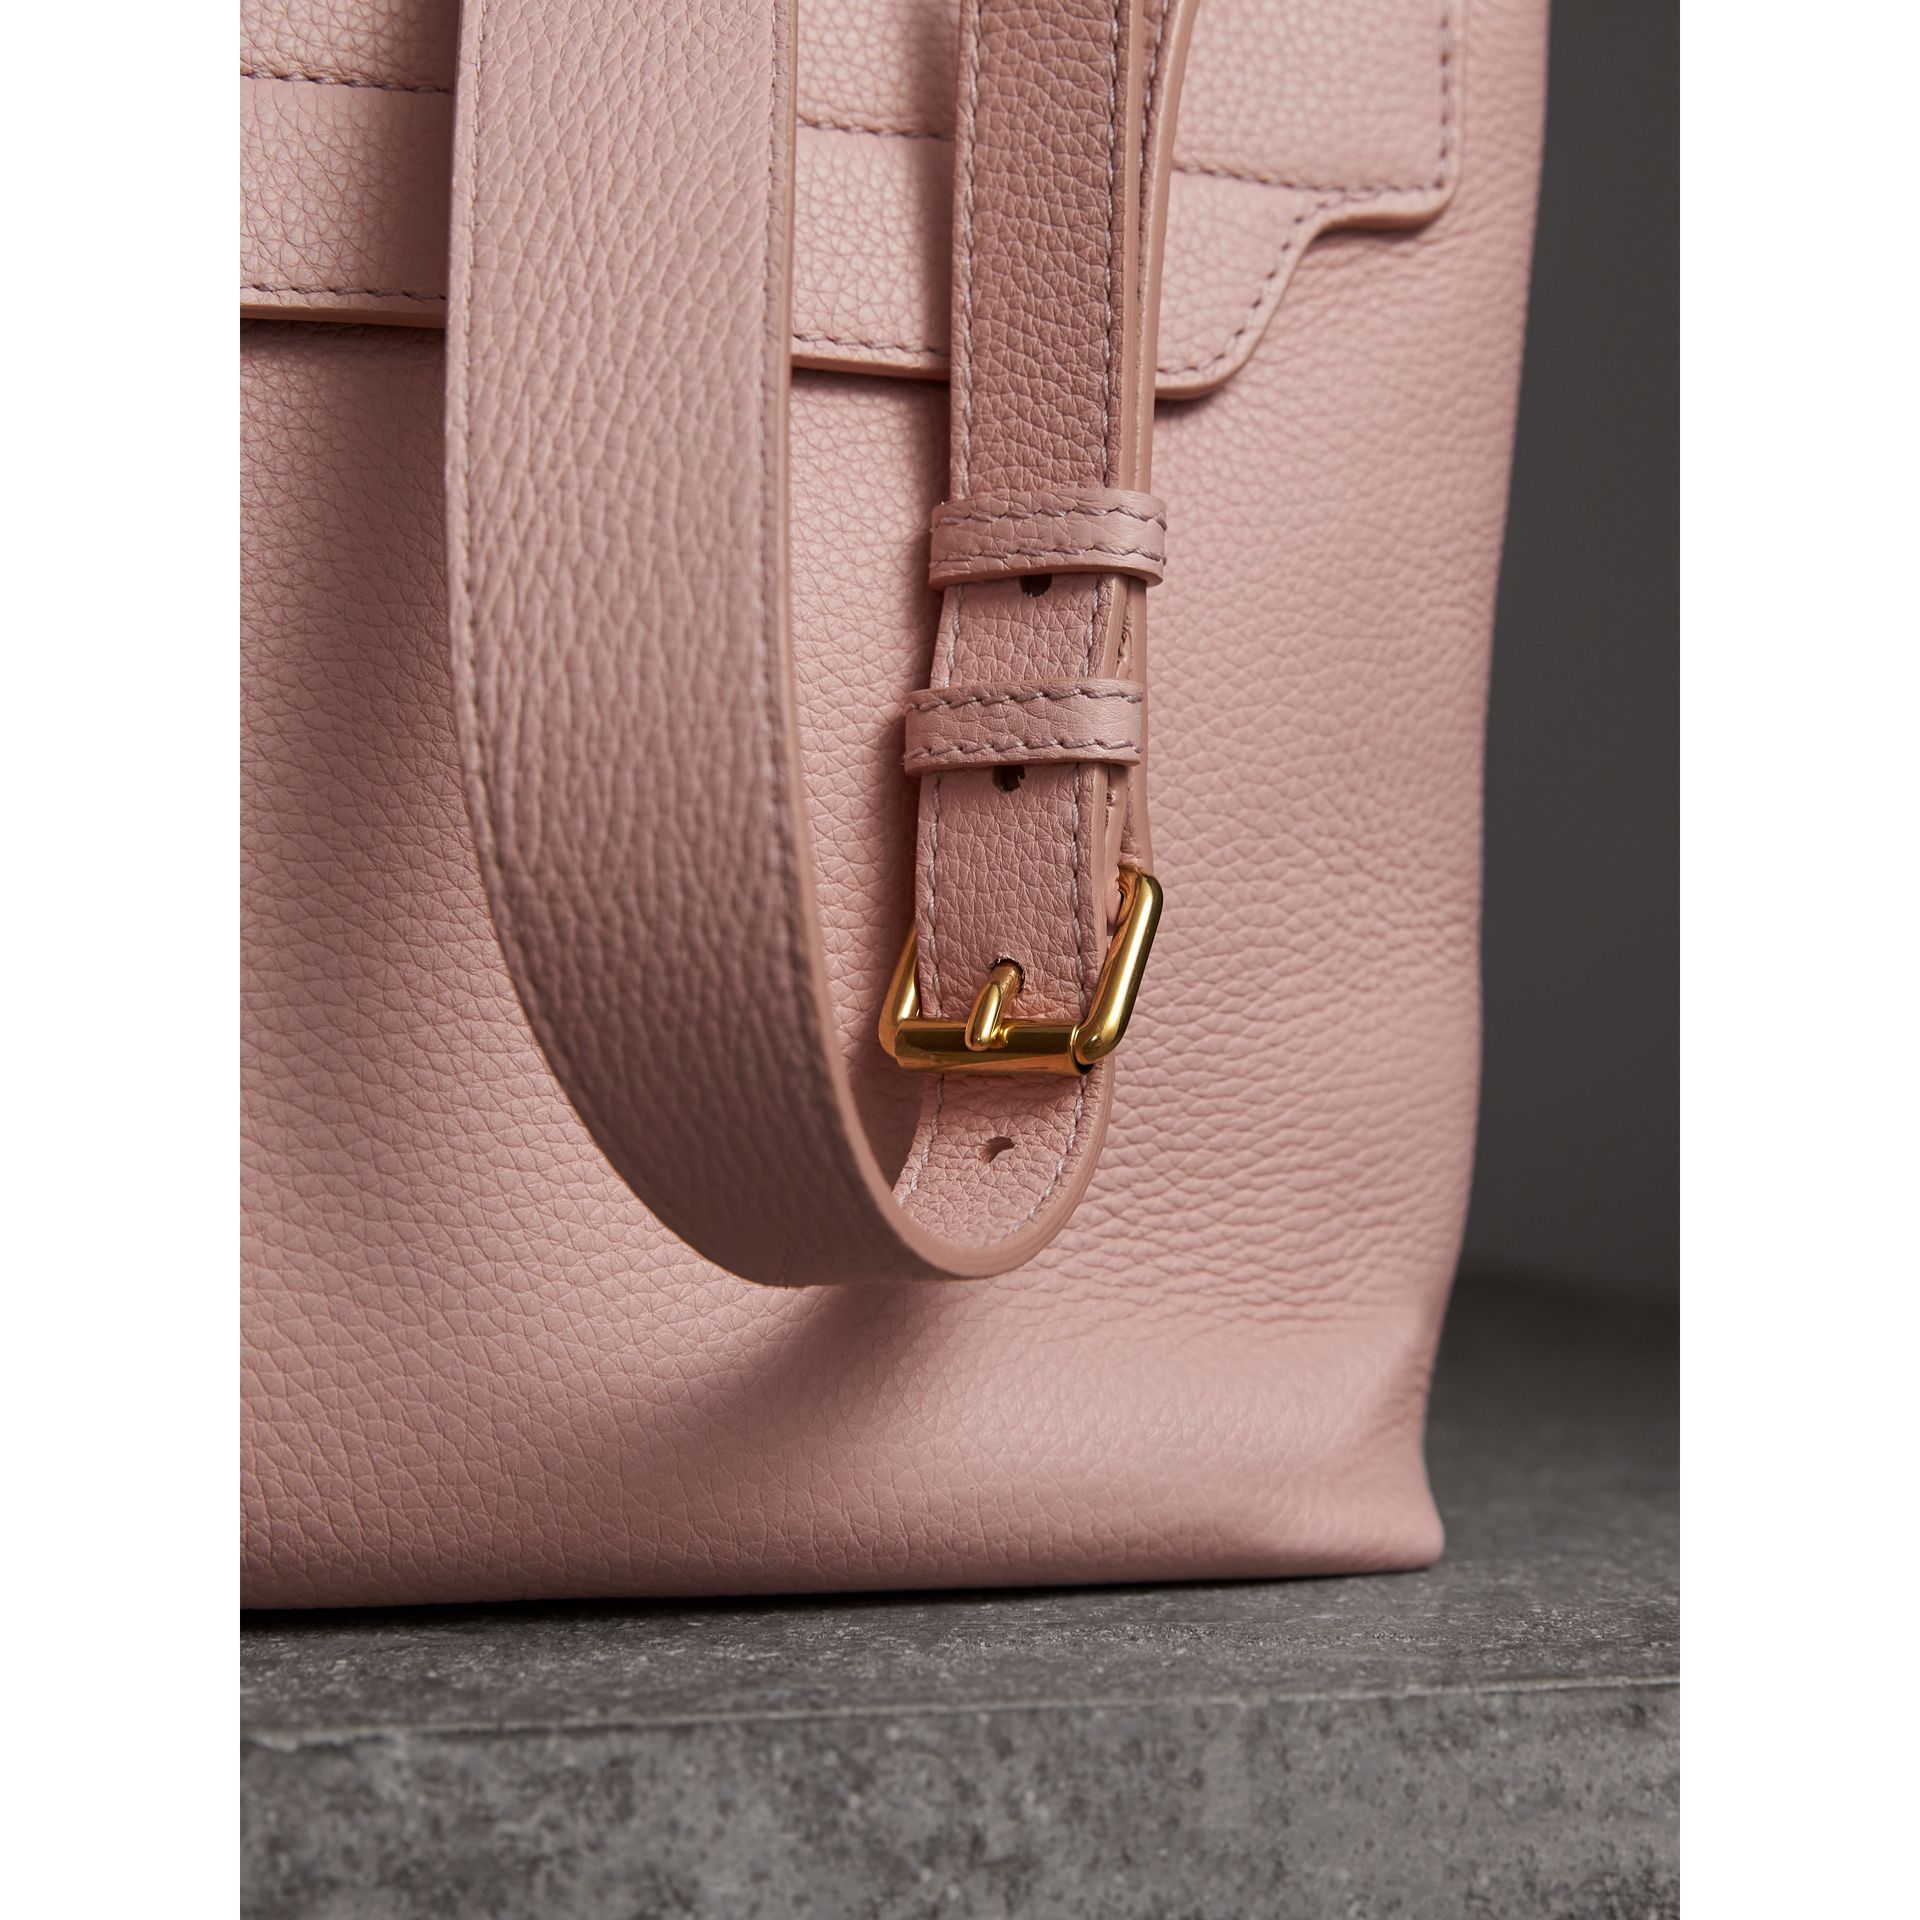 Sac Messenger moyen en cuir estampé (Rose Platiné Pâle) - Femme | Burberry - photo de la galerie 1